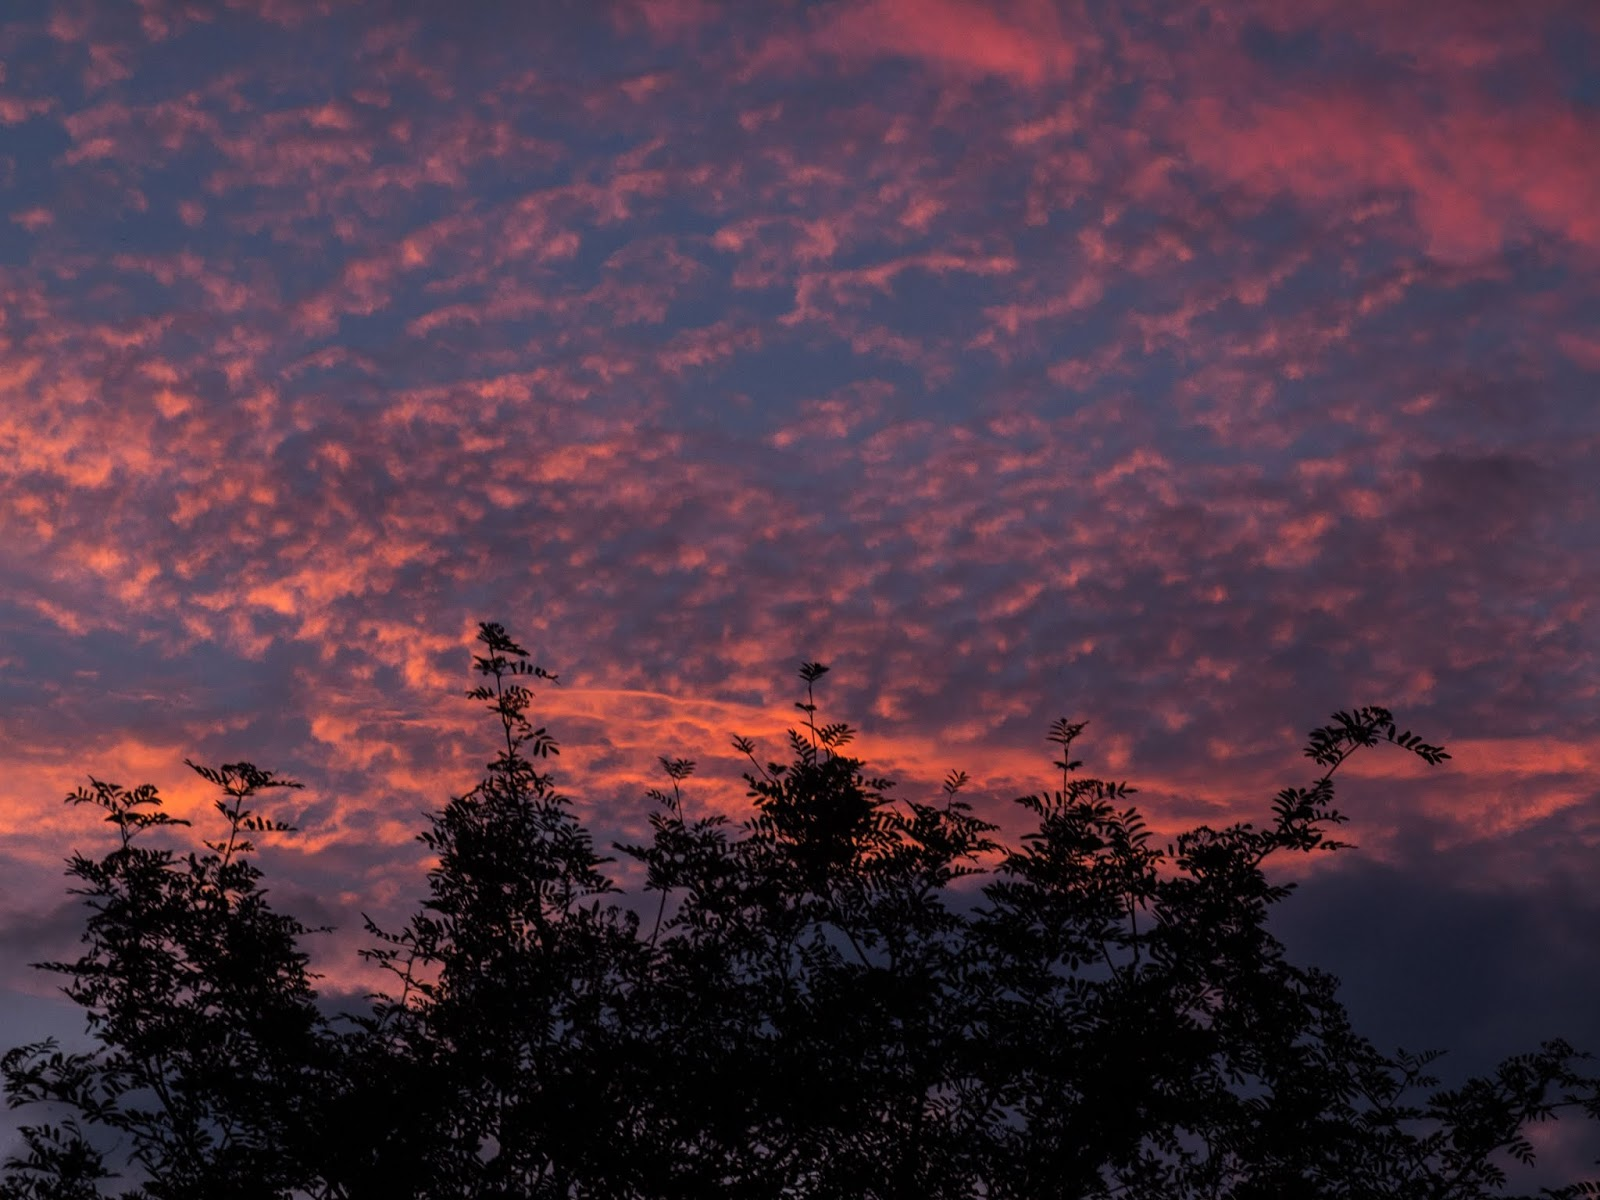 Red Altocumulus clouds behind a tree at sunset in Co.Cork.